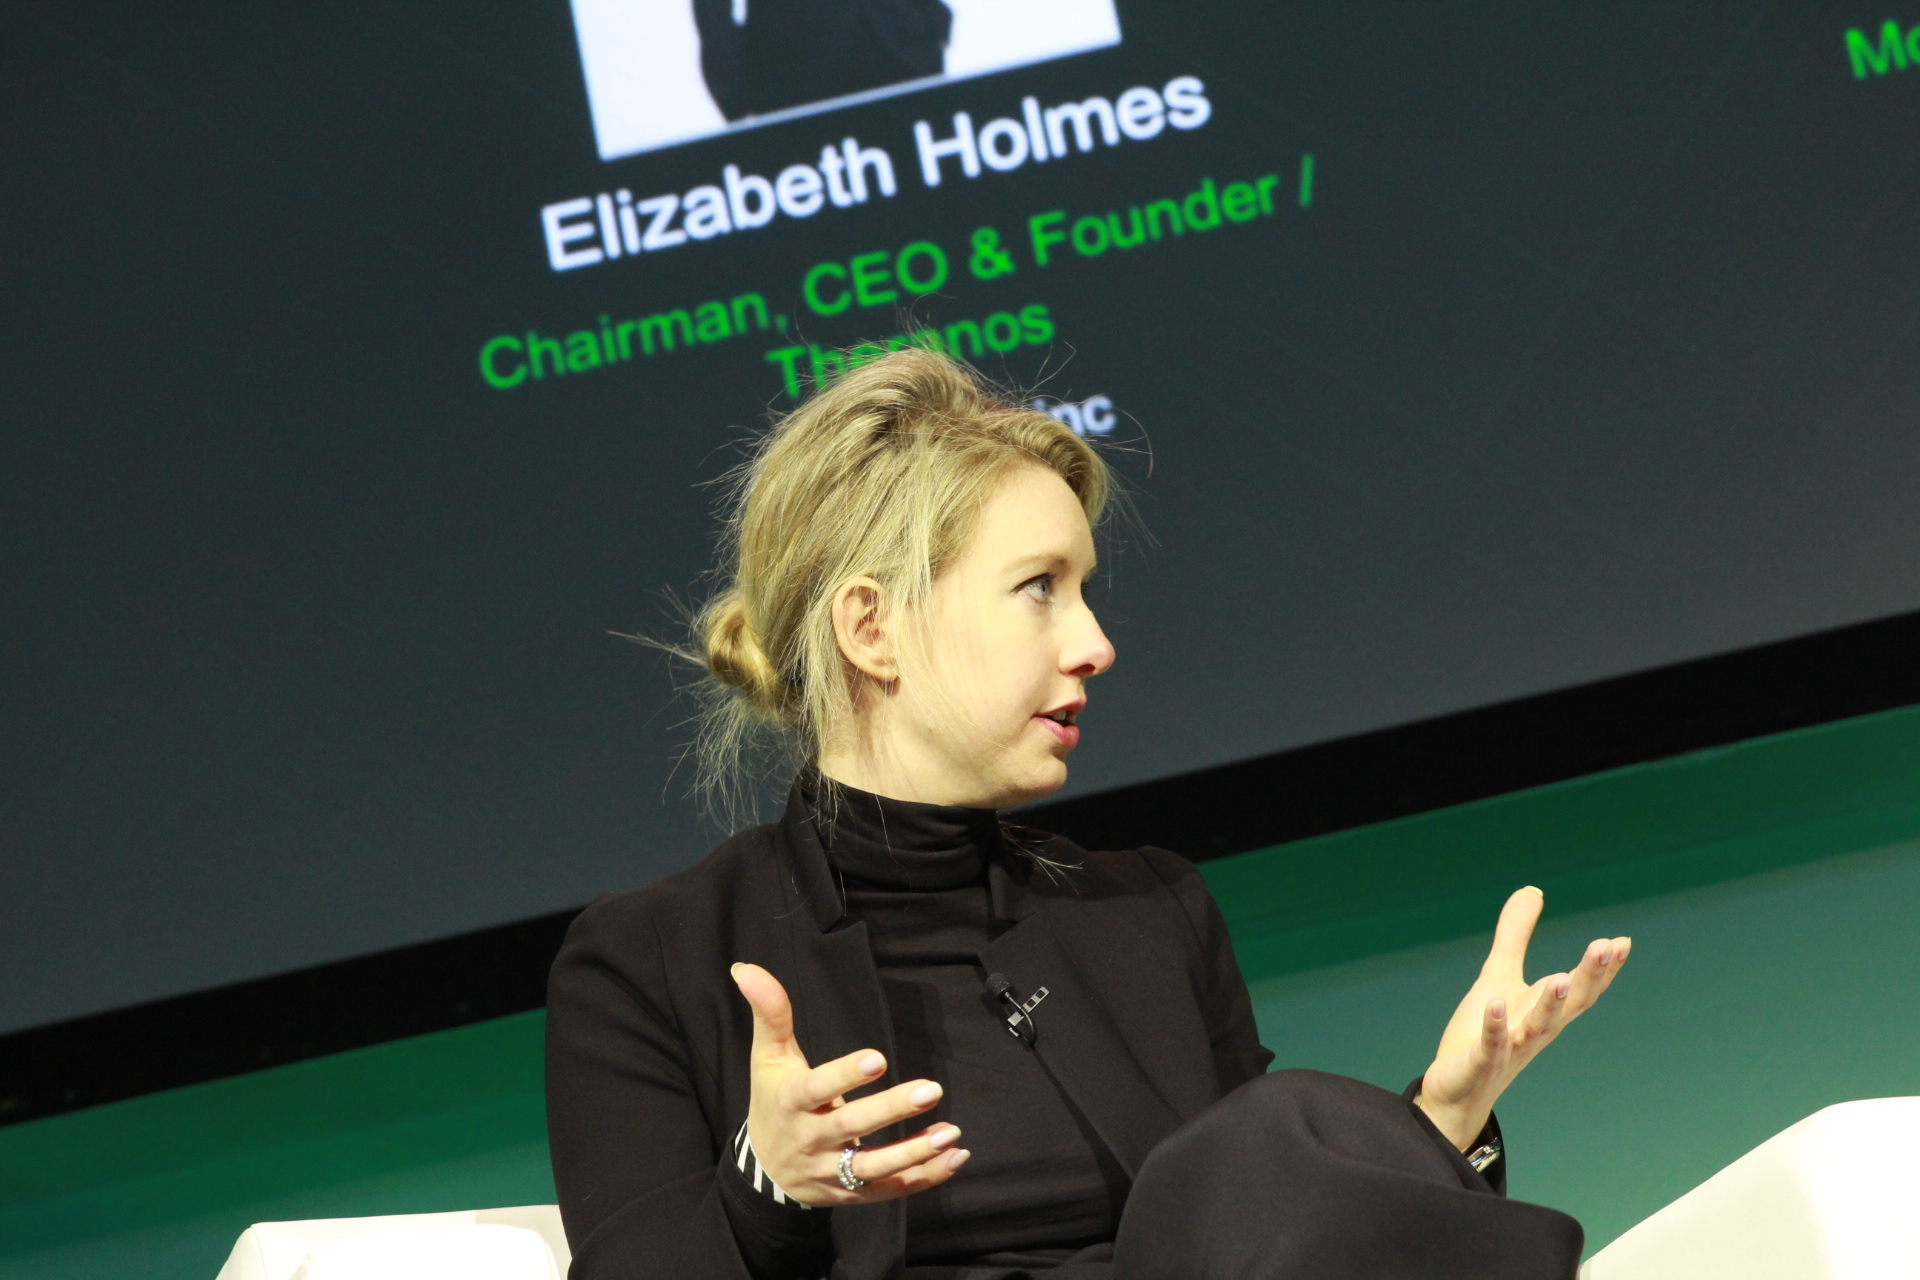 Theranos is offering investors Elizabeth Holmes' shares if